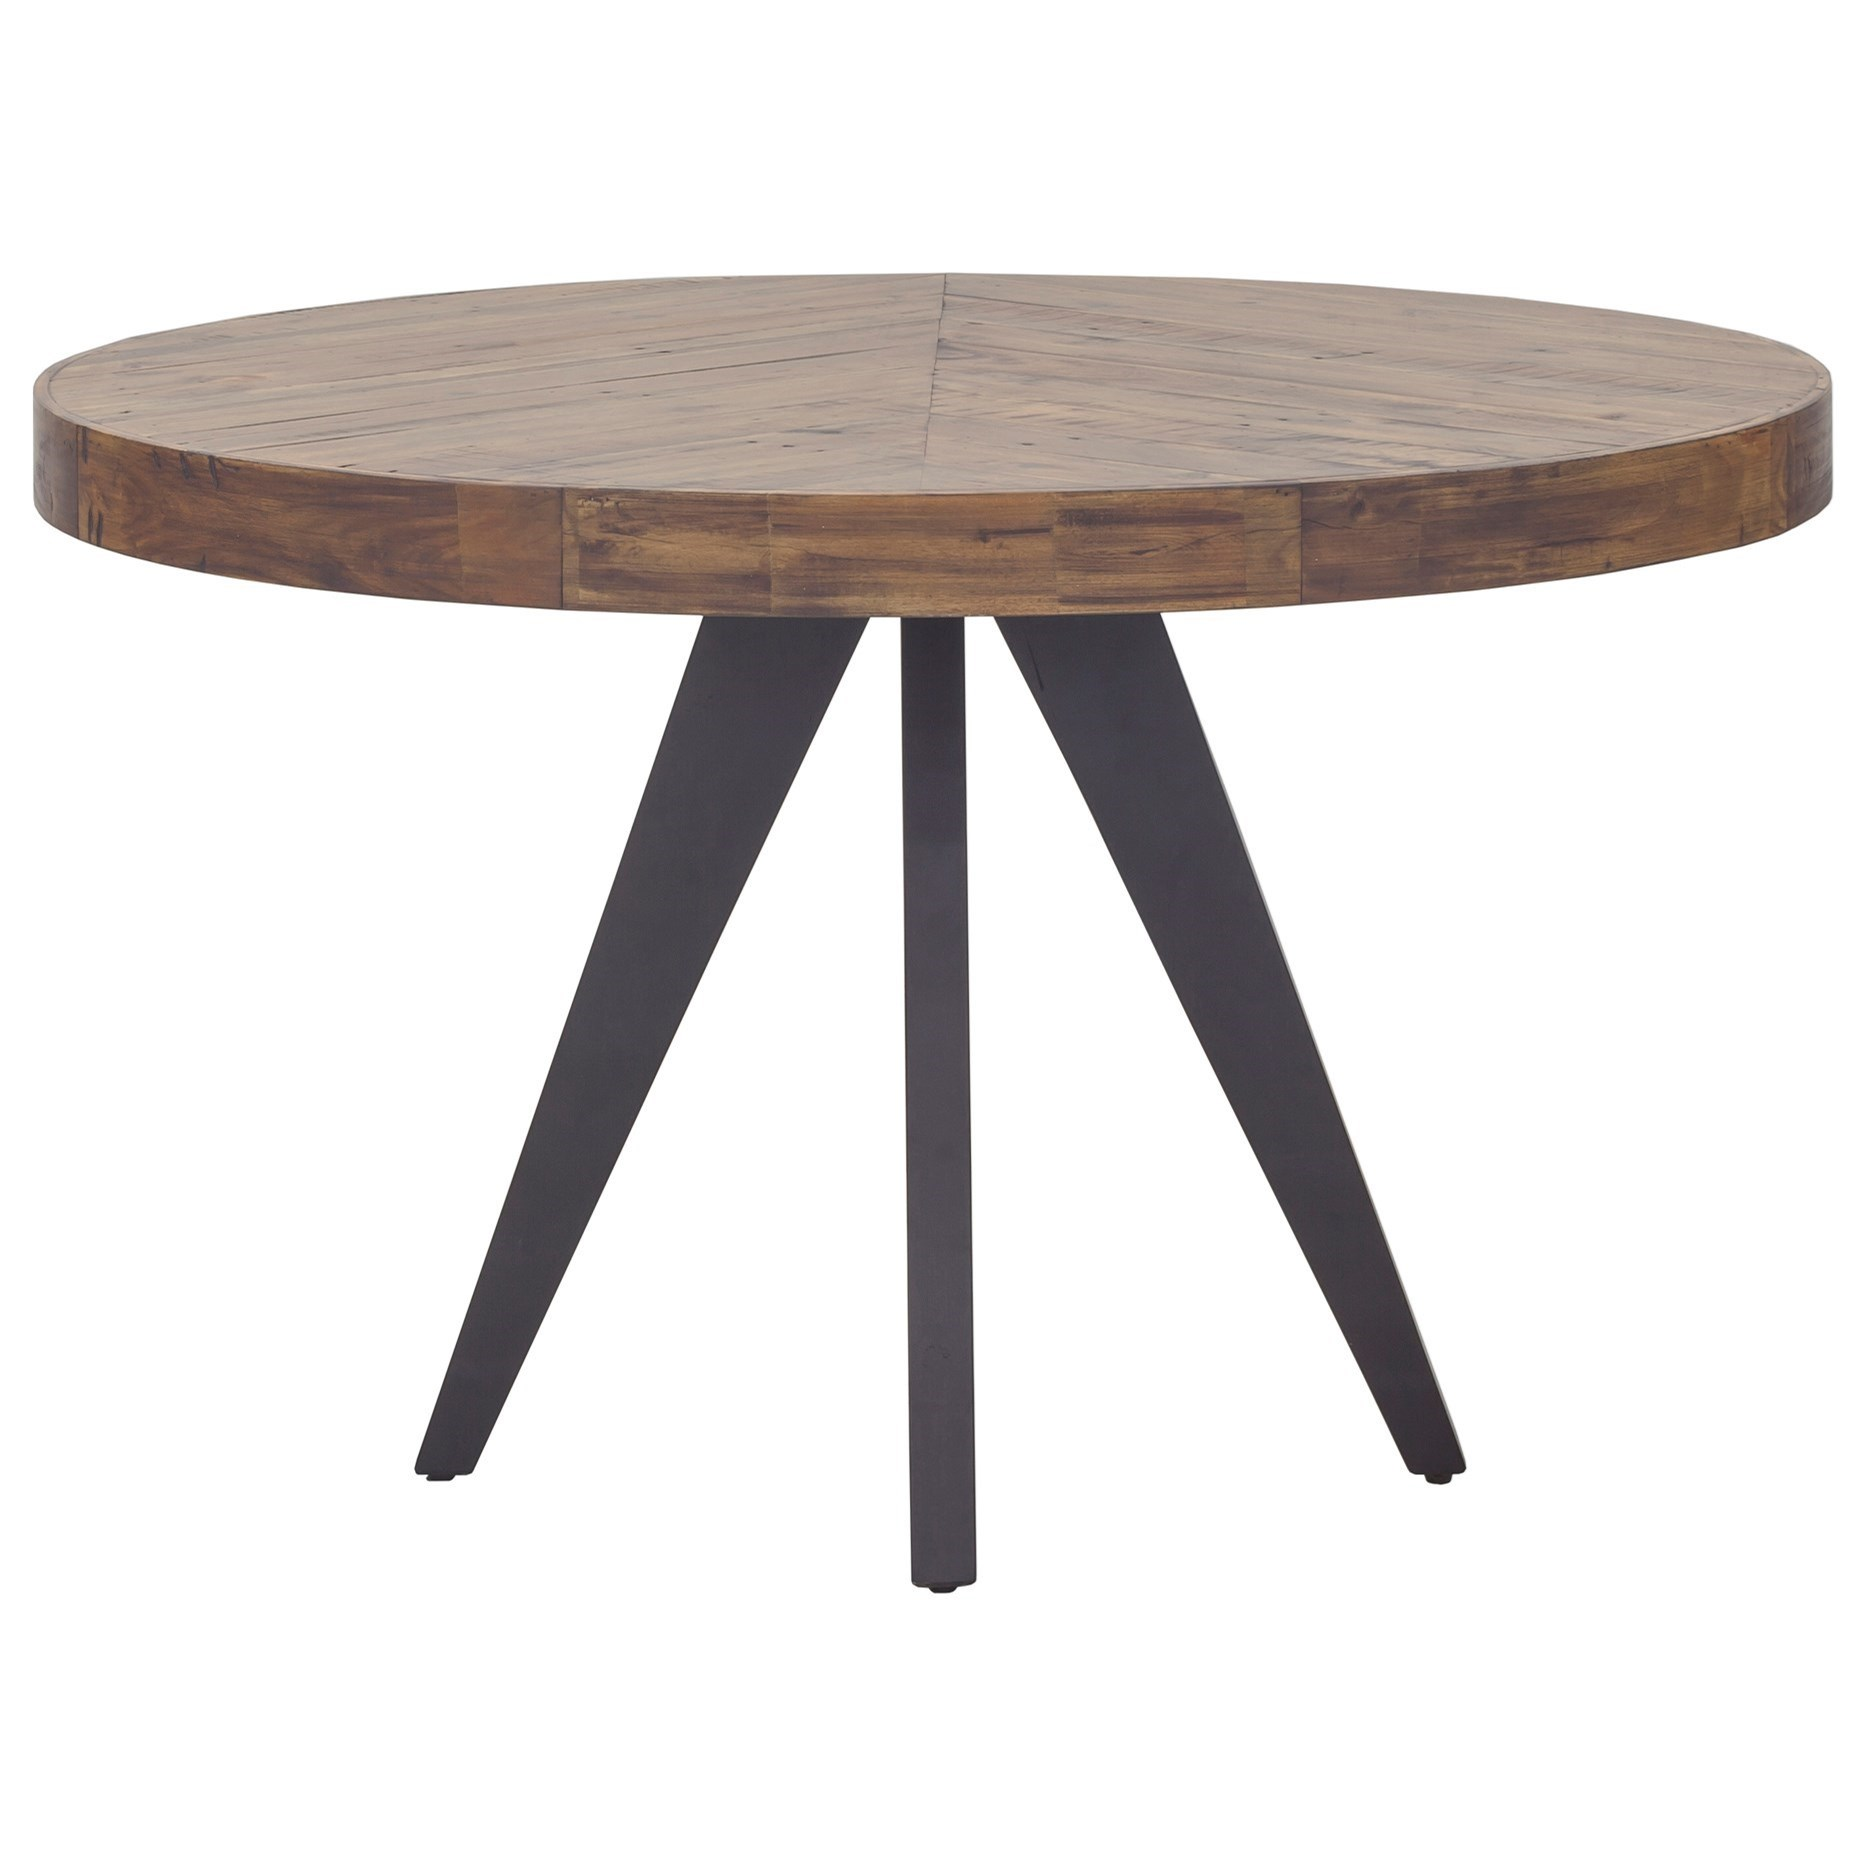 Parq Round Dining Table by Moe's Home Collection at Stoney Creek Furniture